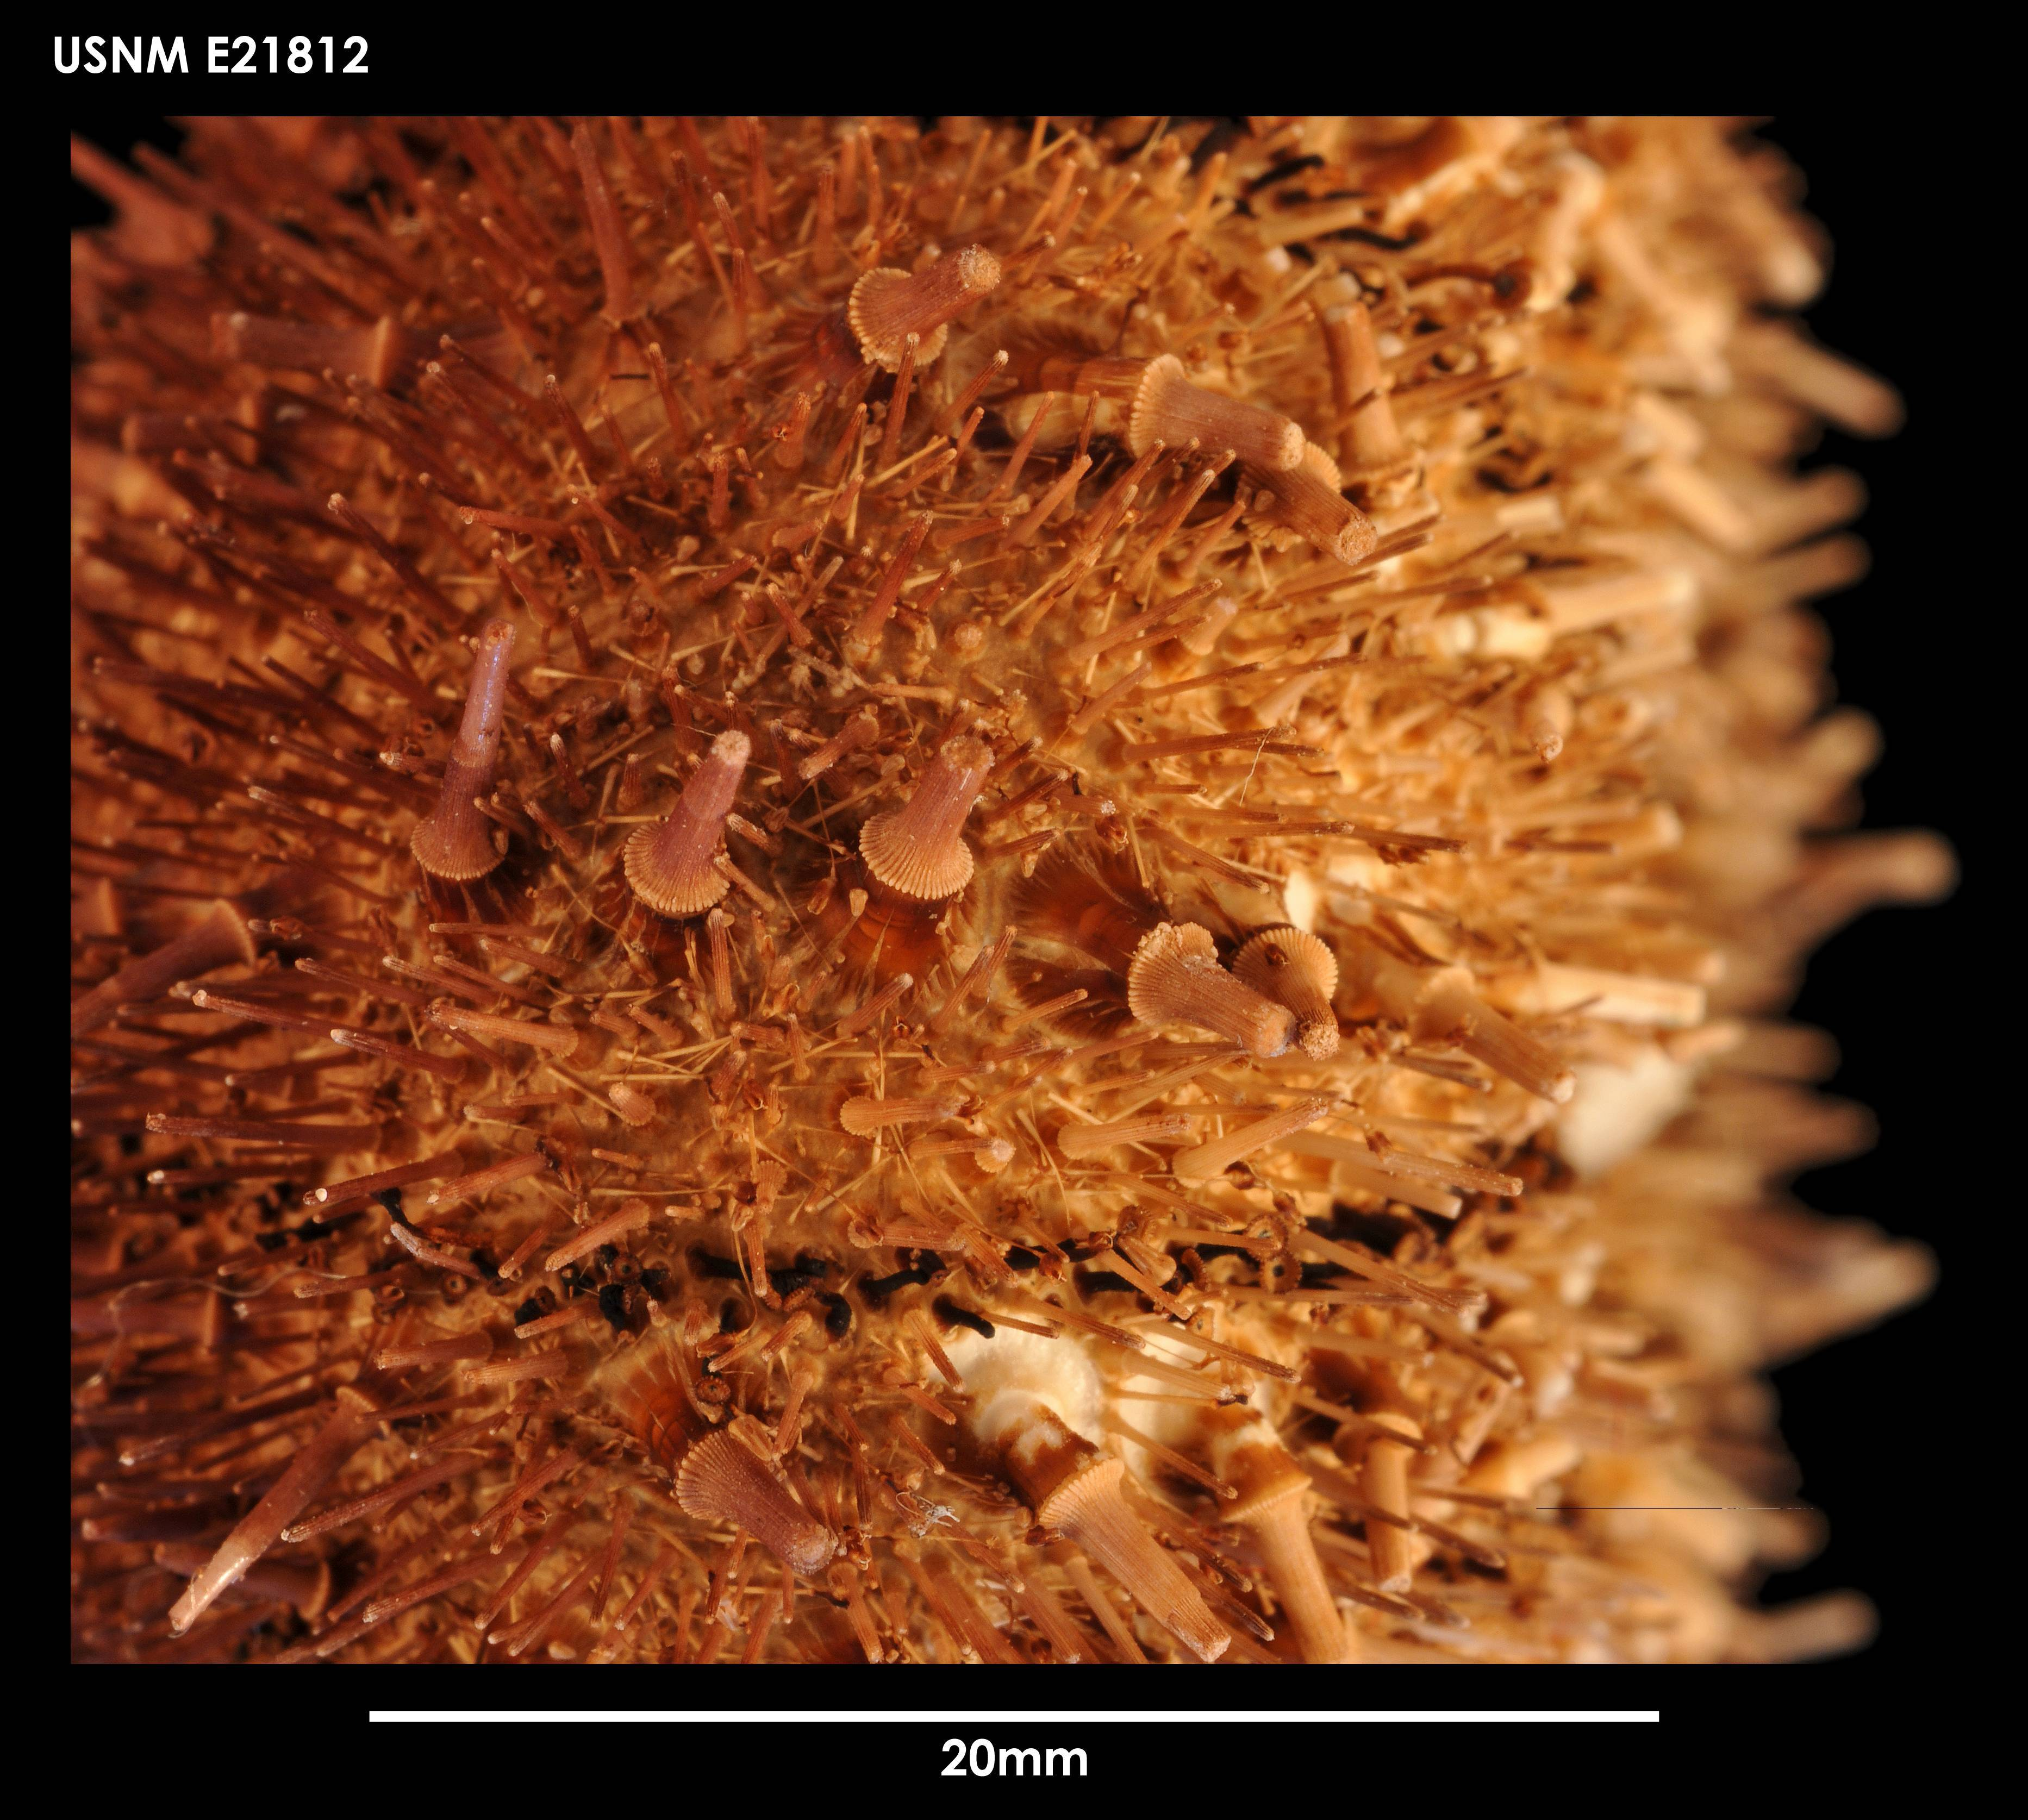 Image of Antarctic sea urchin